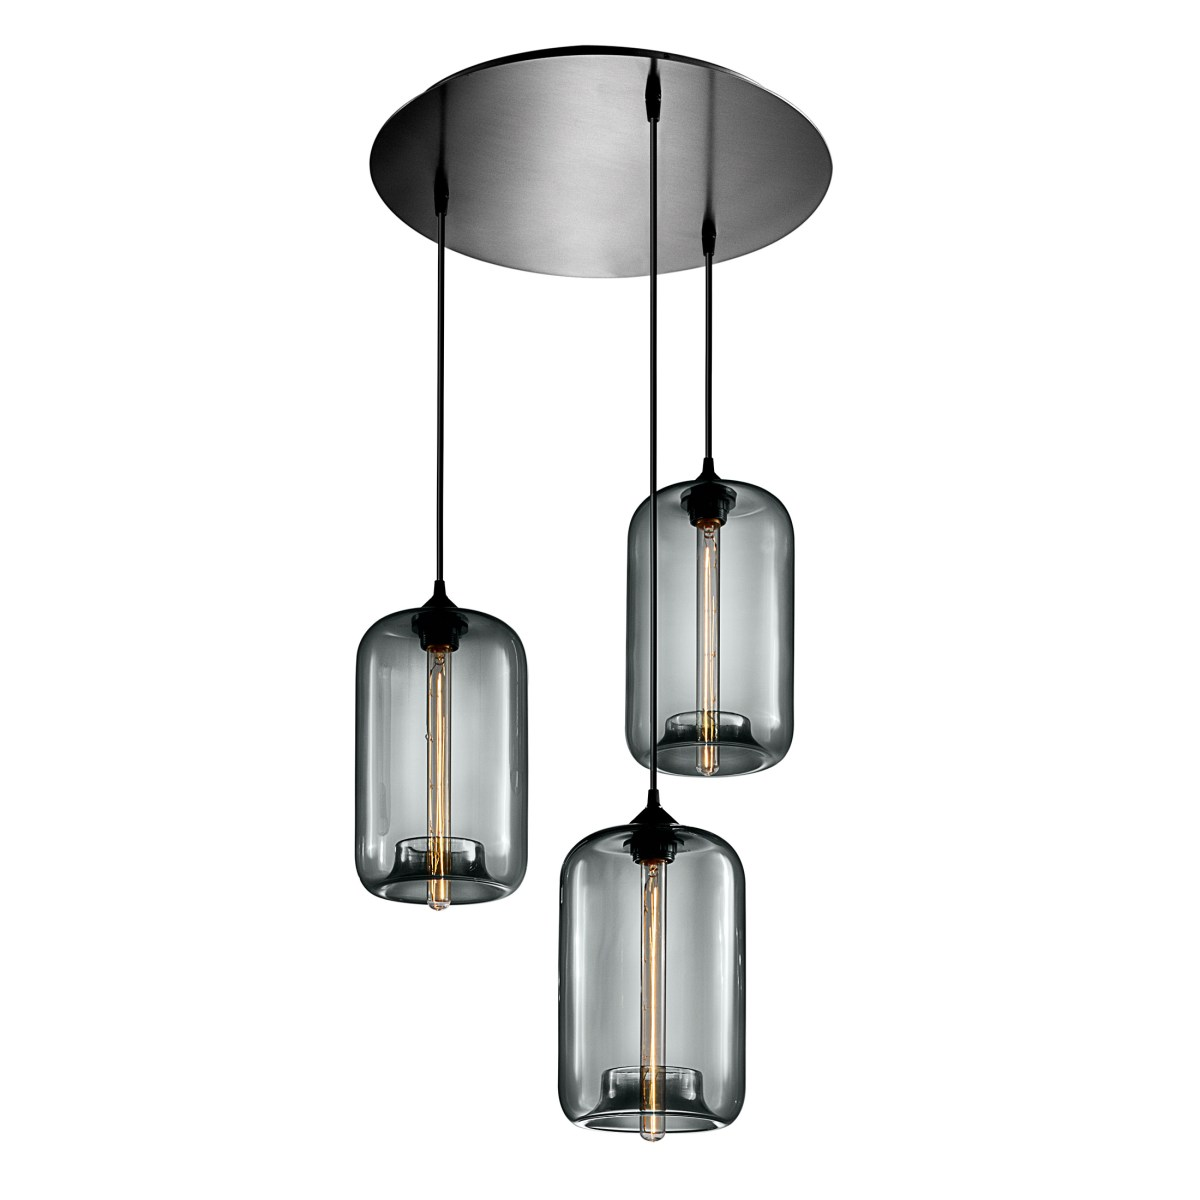 Modern Island Lighting Interior Lights Contemporary Modern Multi Pendant Light